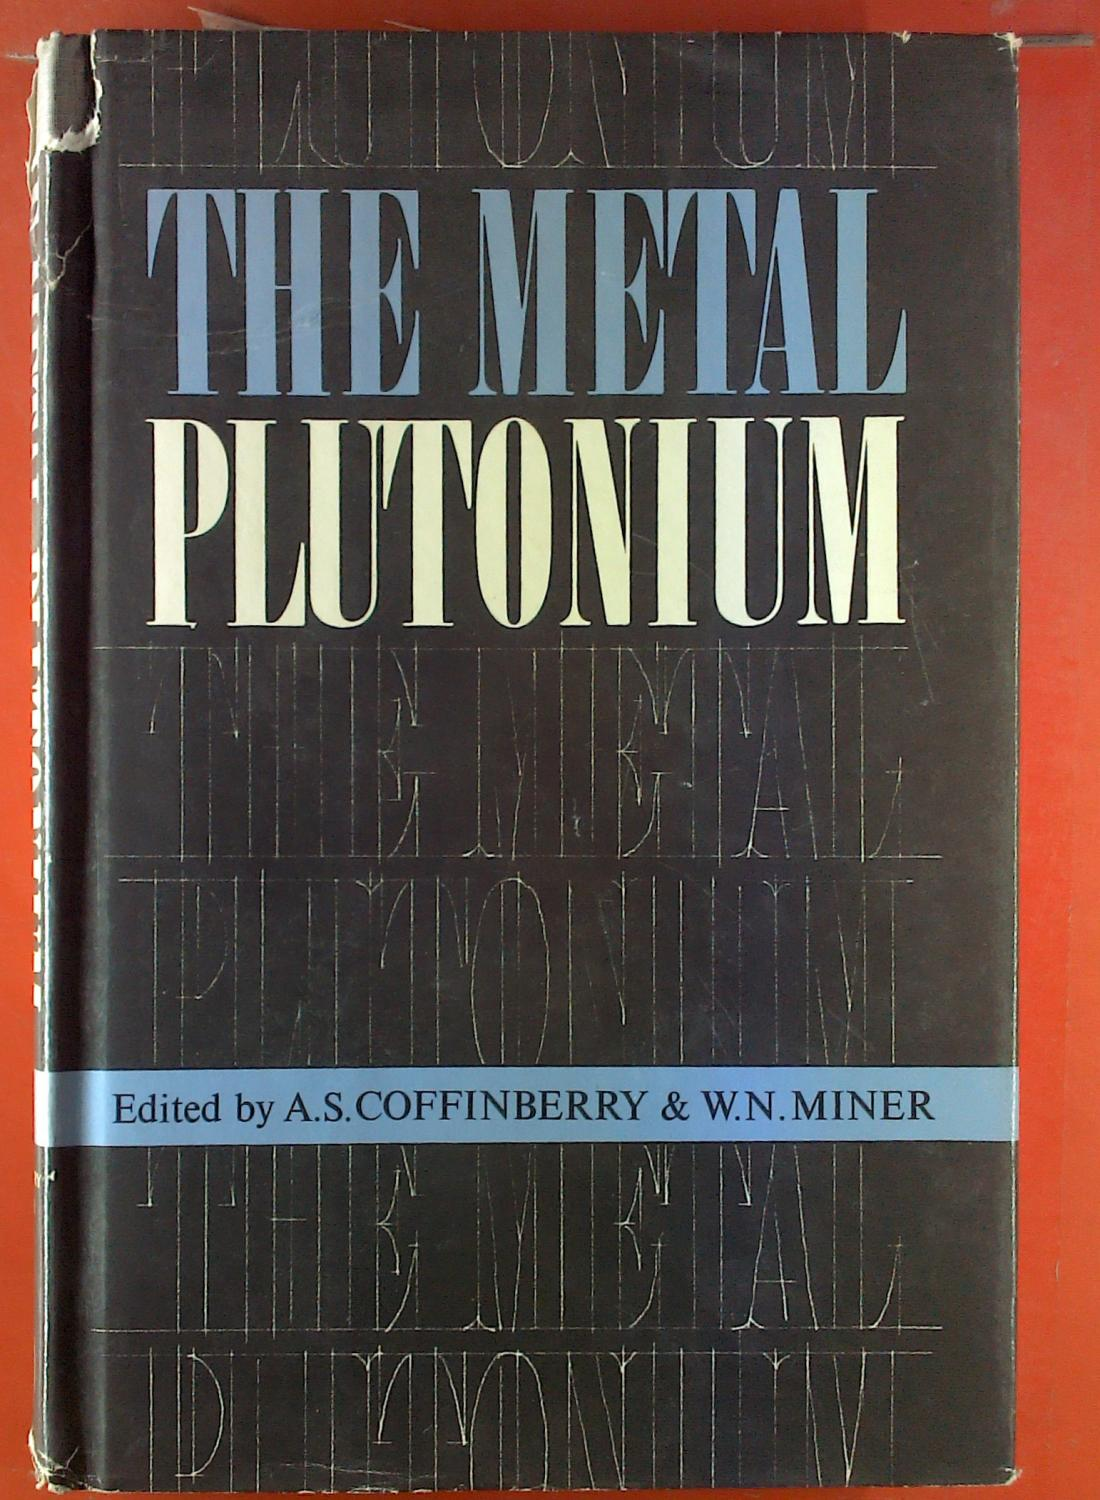 The Metal Plutonium by A. S. Coffinberry & W. N. Miner ...